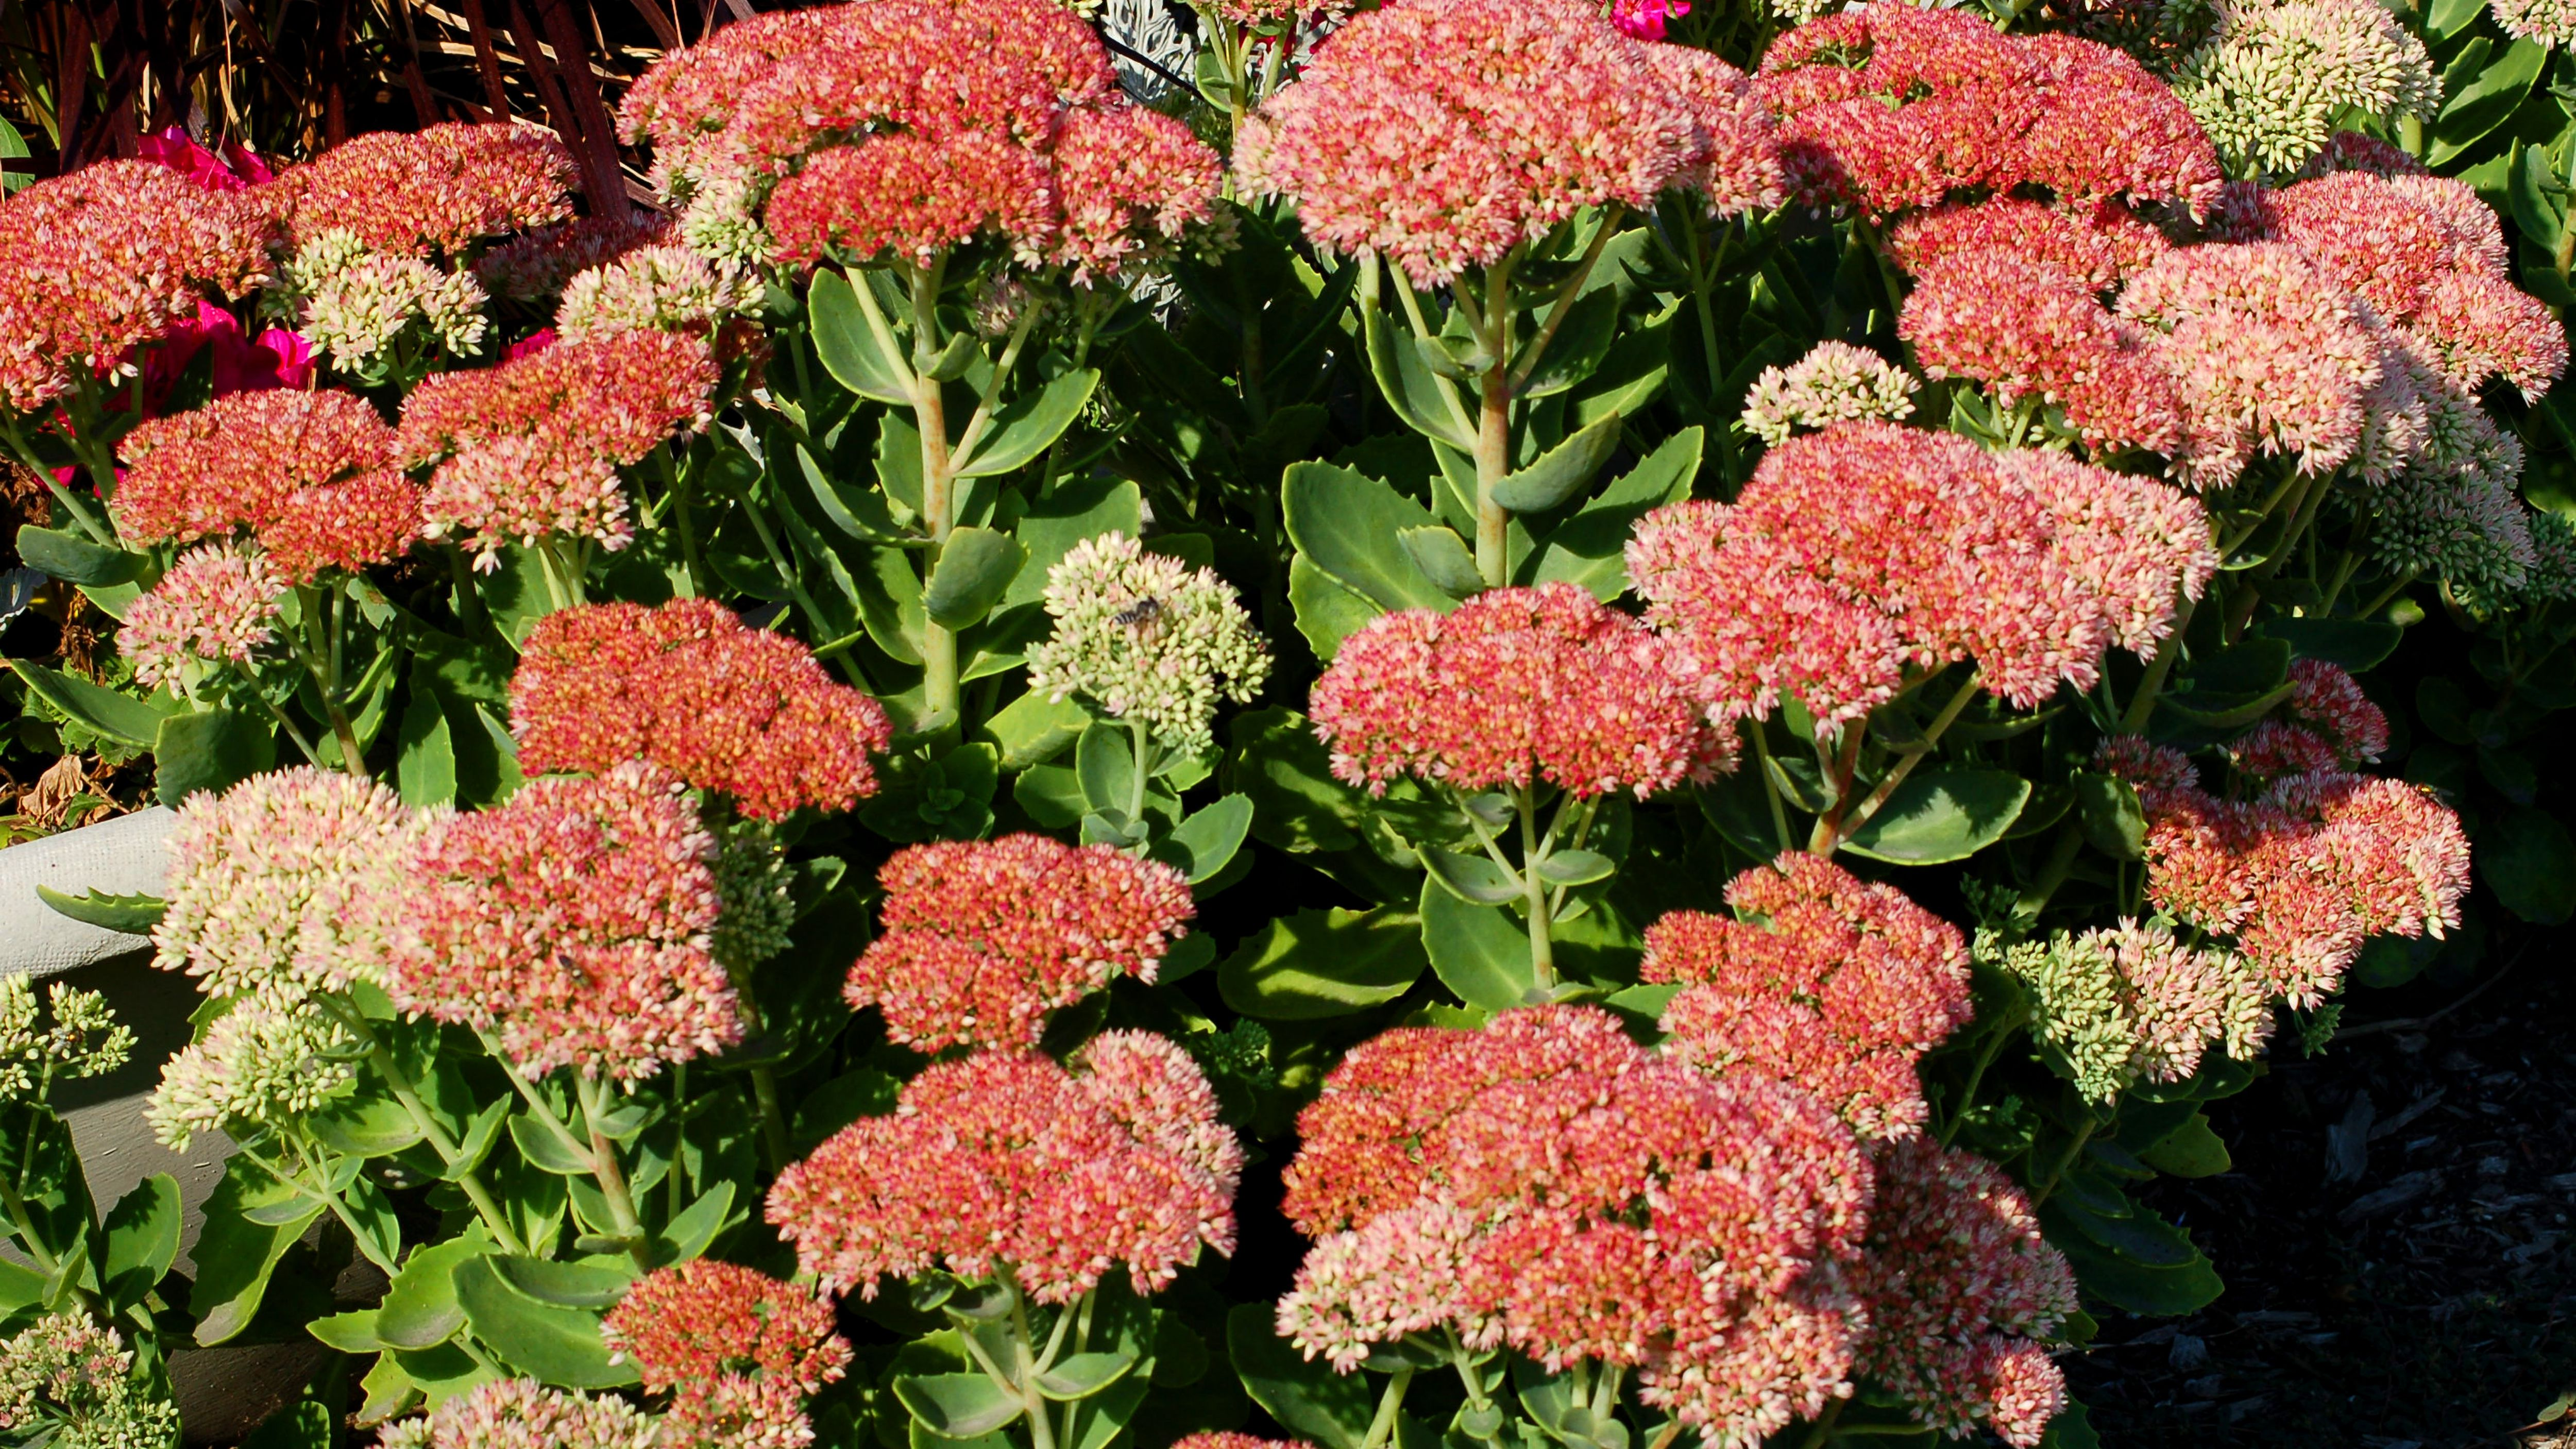 Autumn Joy Stonecrop Sedum Plant Profile